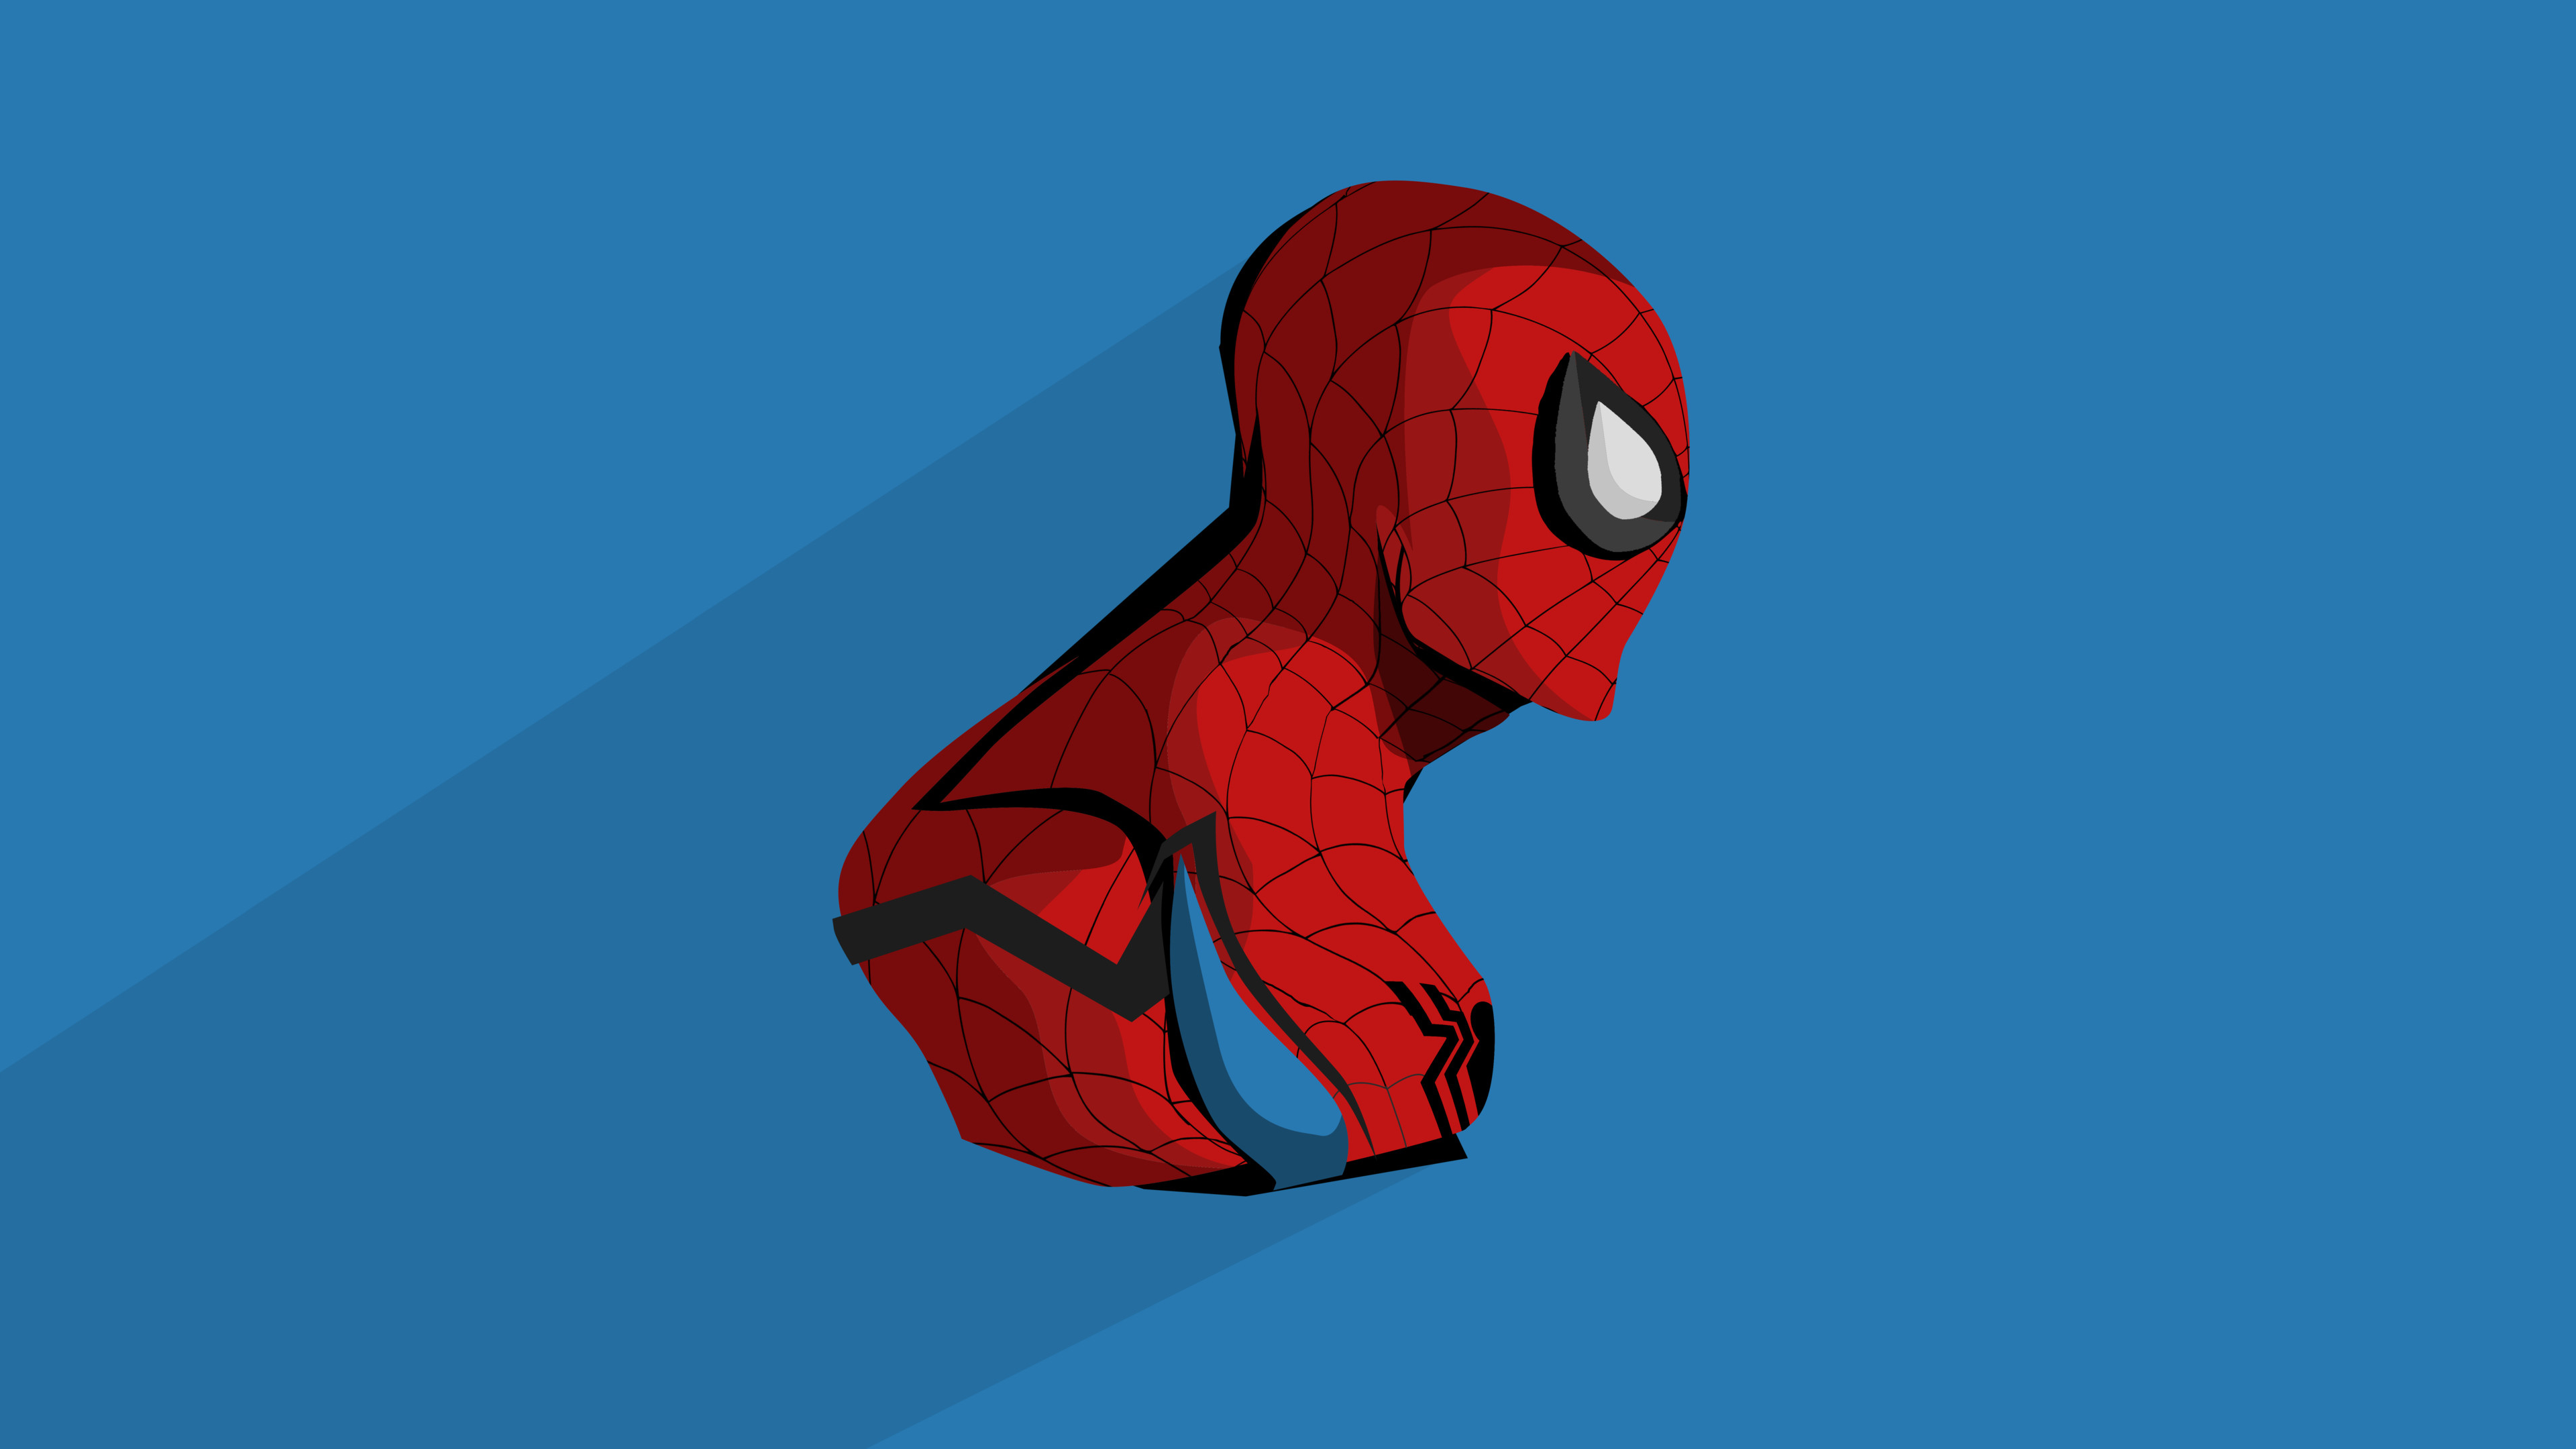 Spider Man Minimal Artwork 4K